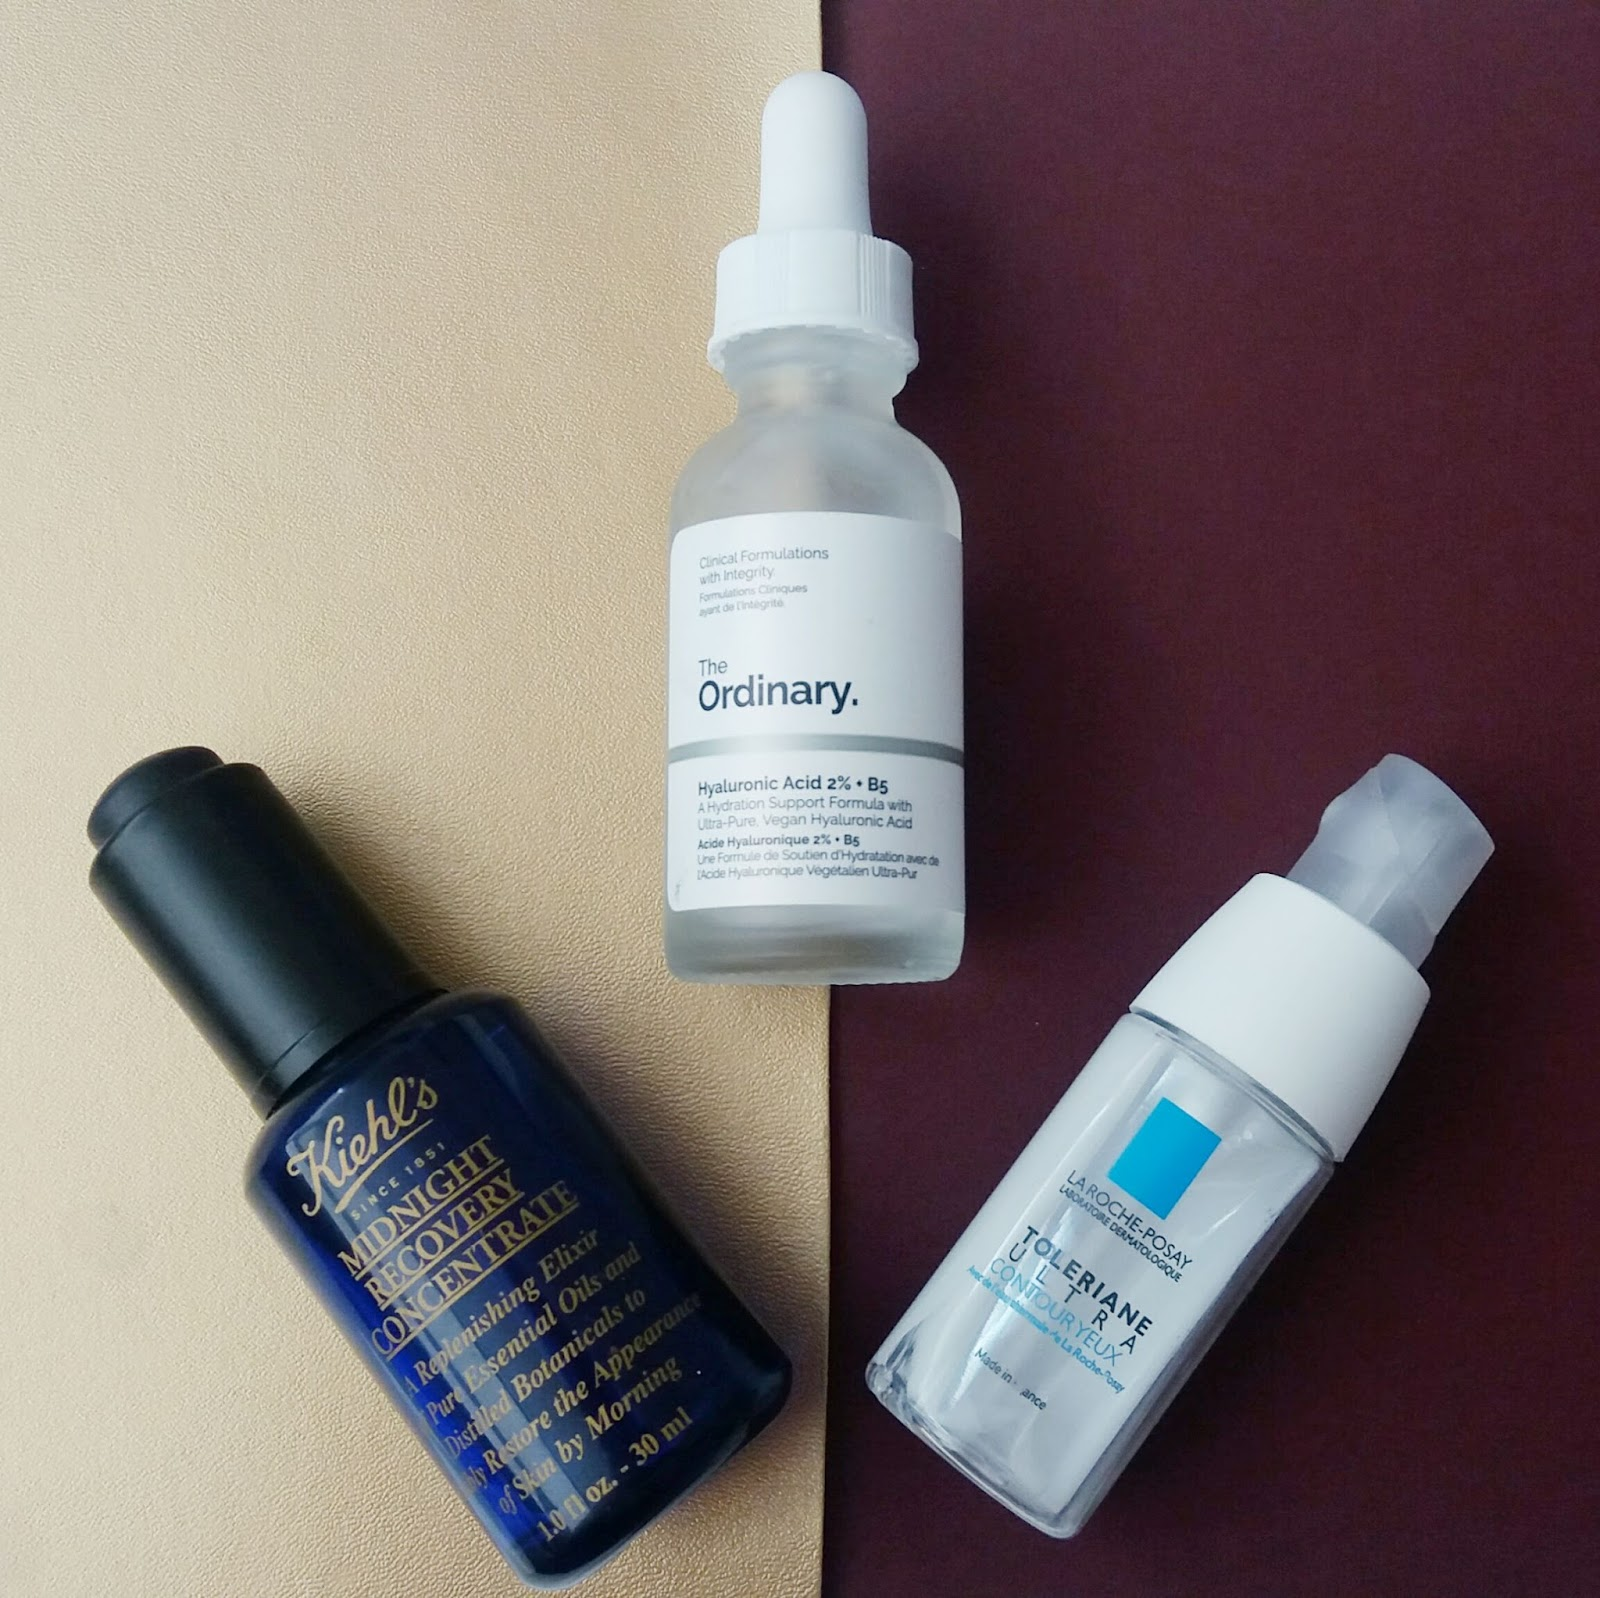 Kiehl's Midnight Recovery Concentrate, The Ordinary Hyaluronic Acid and La Roche Posay Toleraine Ultra Eye Cream